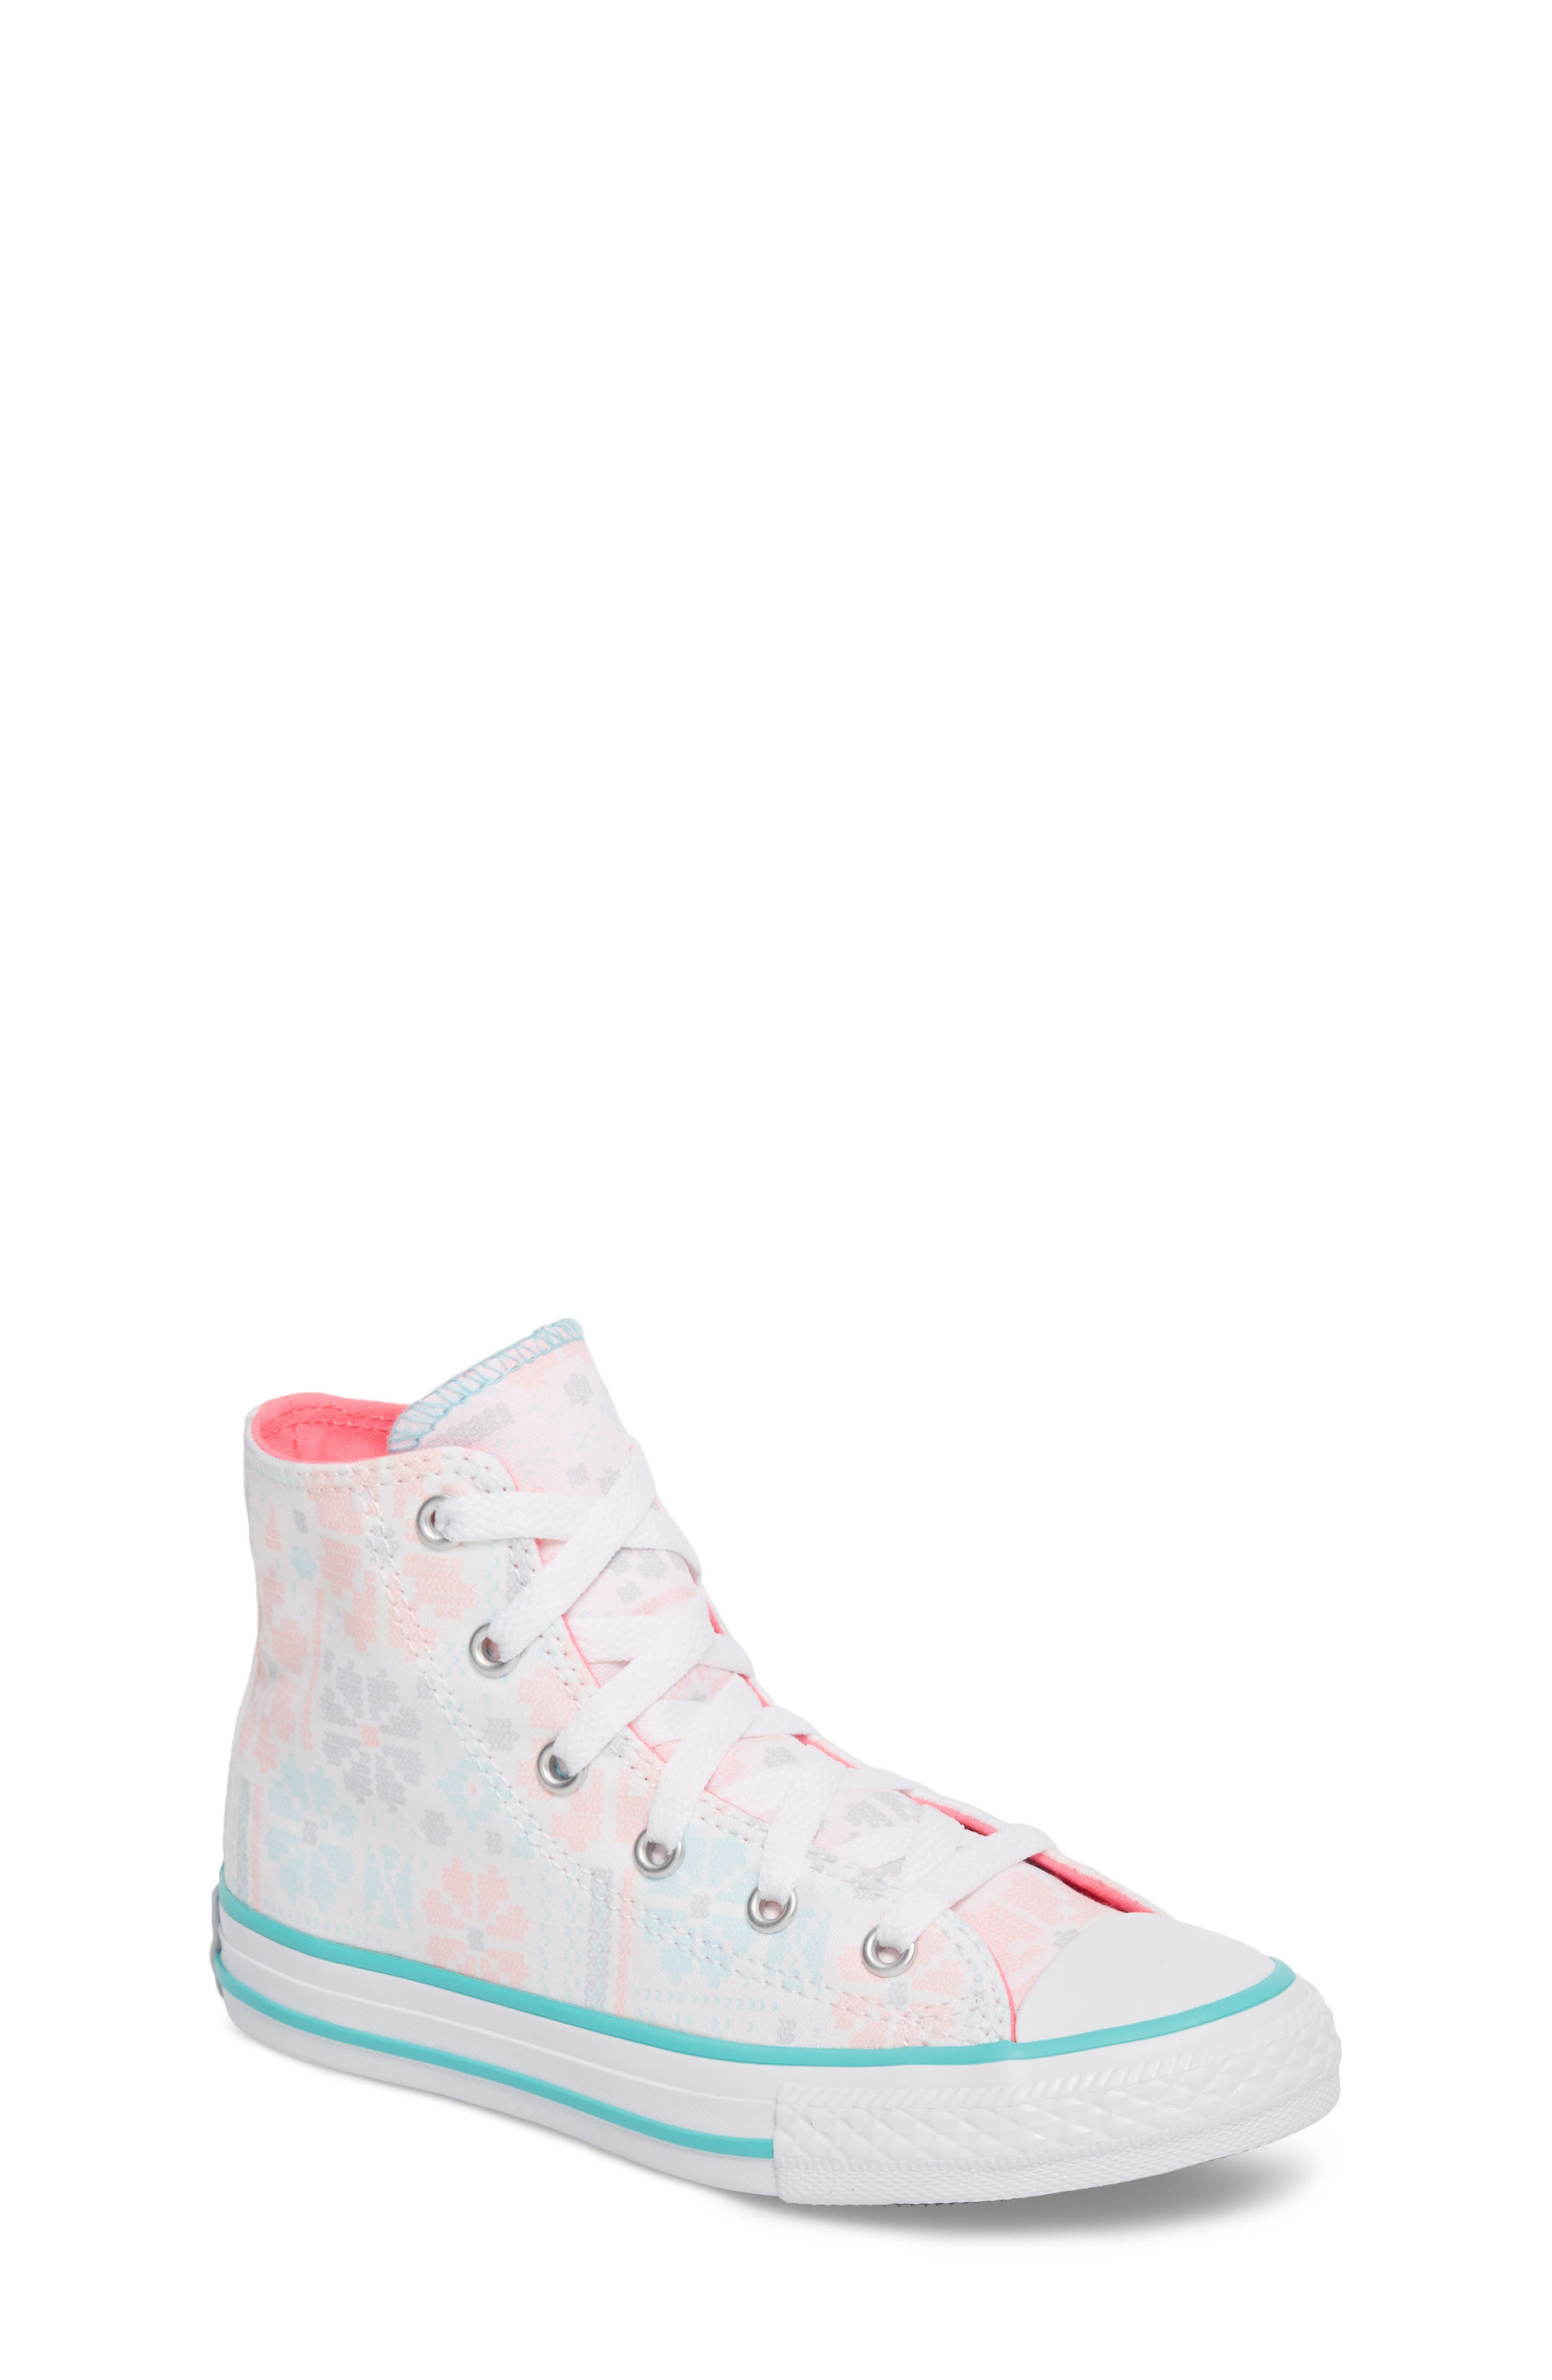 Chuck Taylor<sup>®</sup> All Star<sup>®</sup> High Top Sneaker,                             Main thumbnail 1, color,                             White/ Pink Canvas